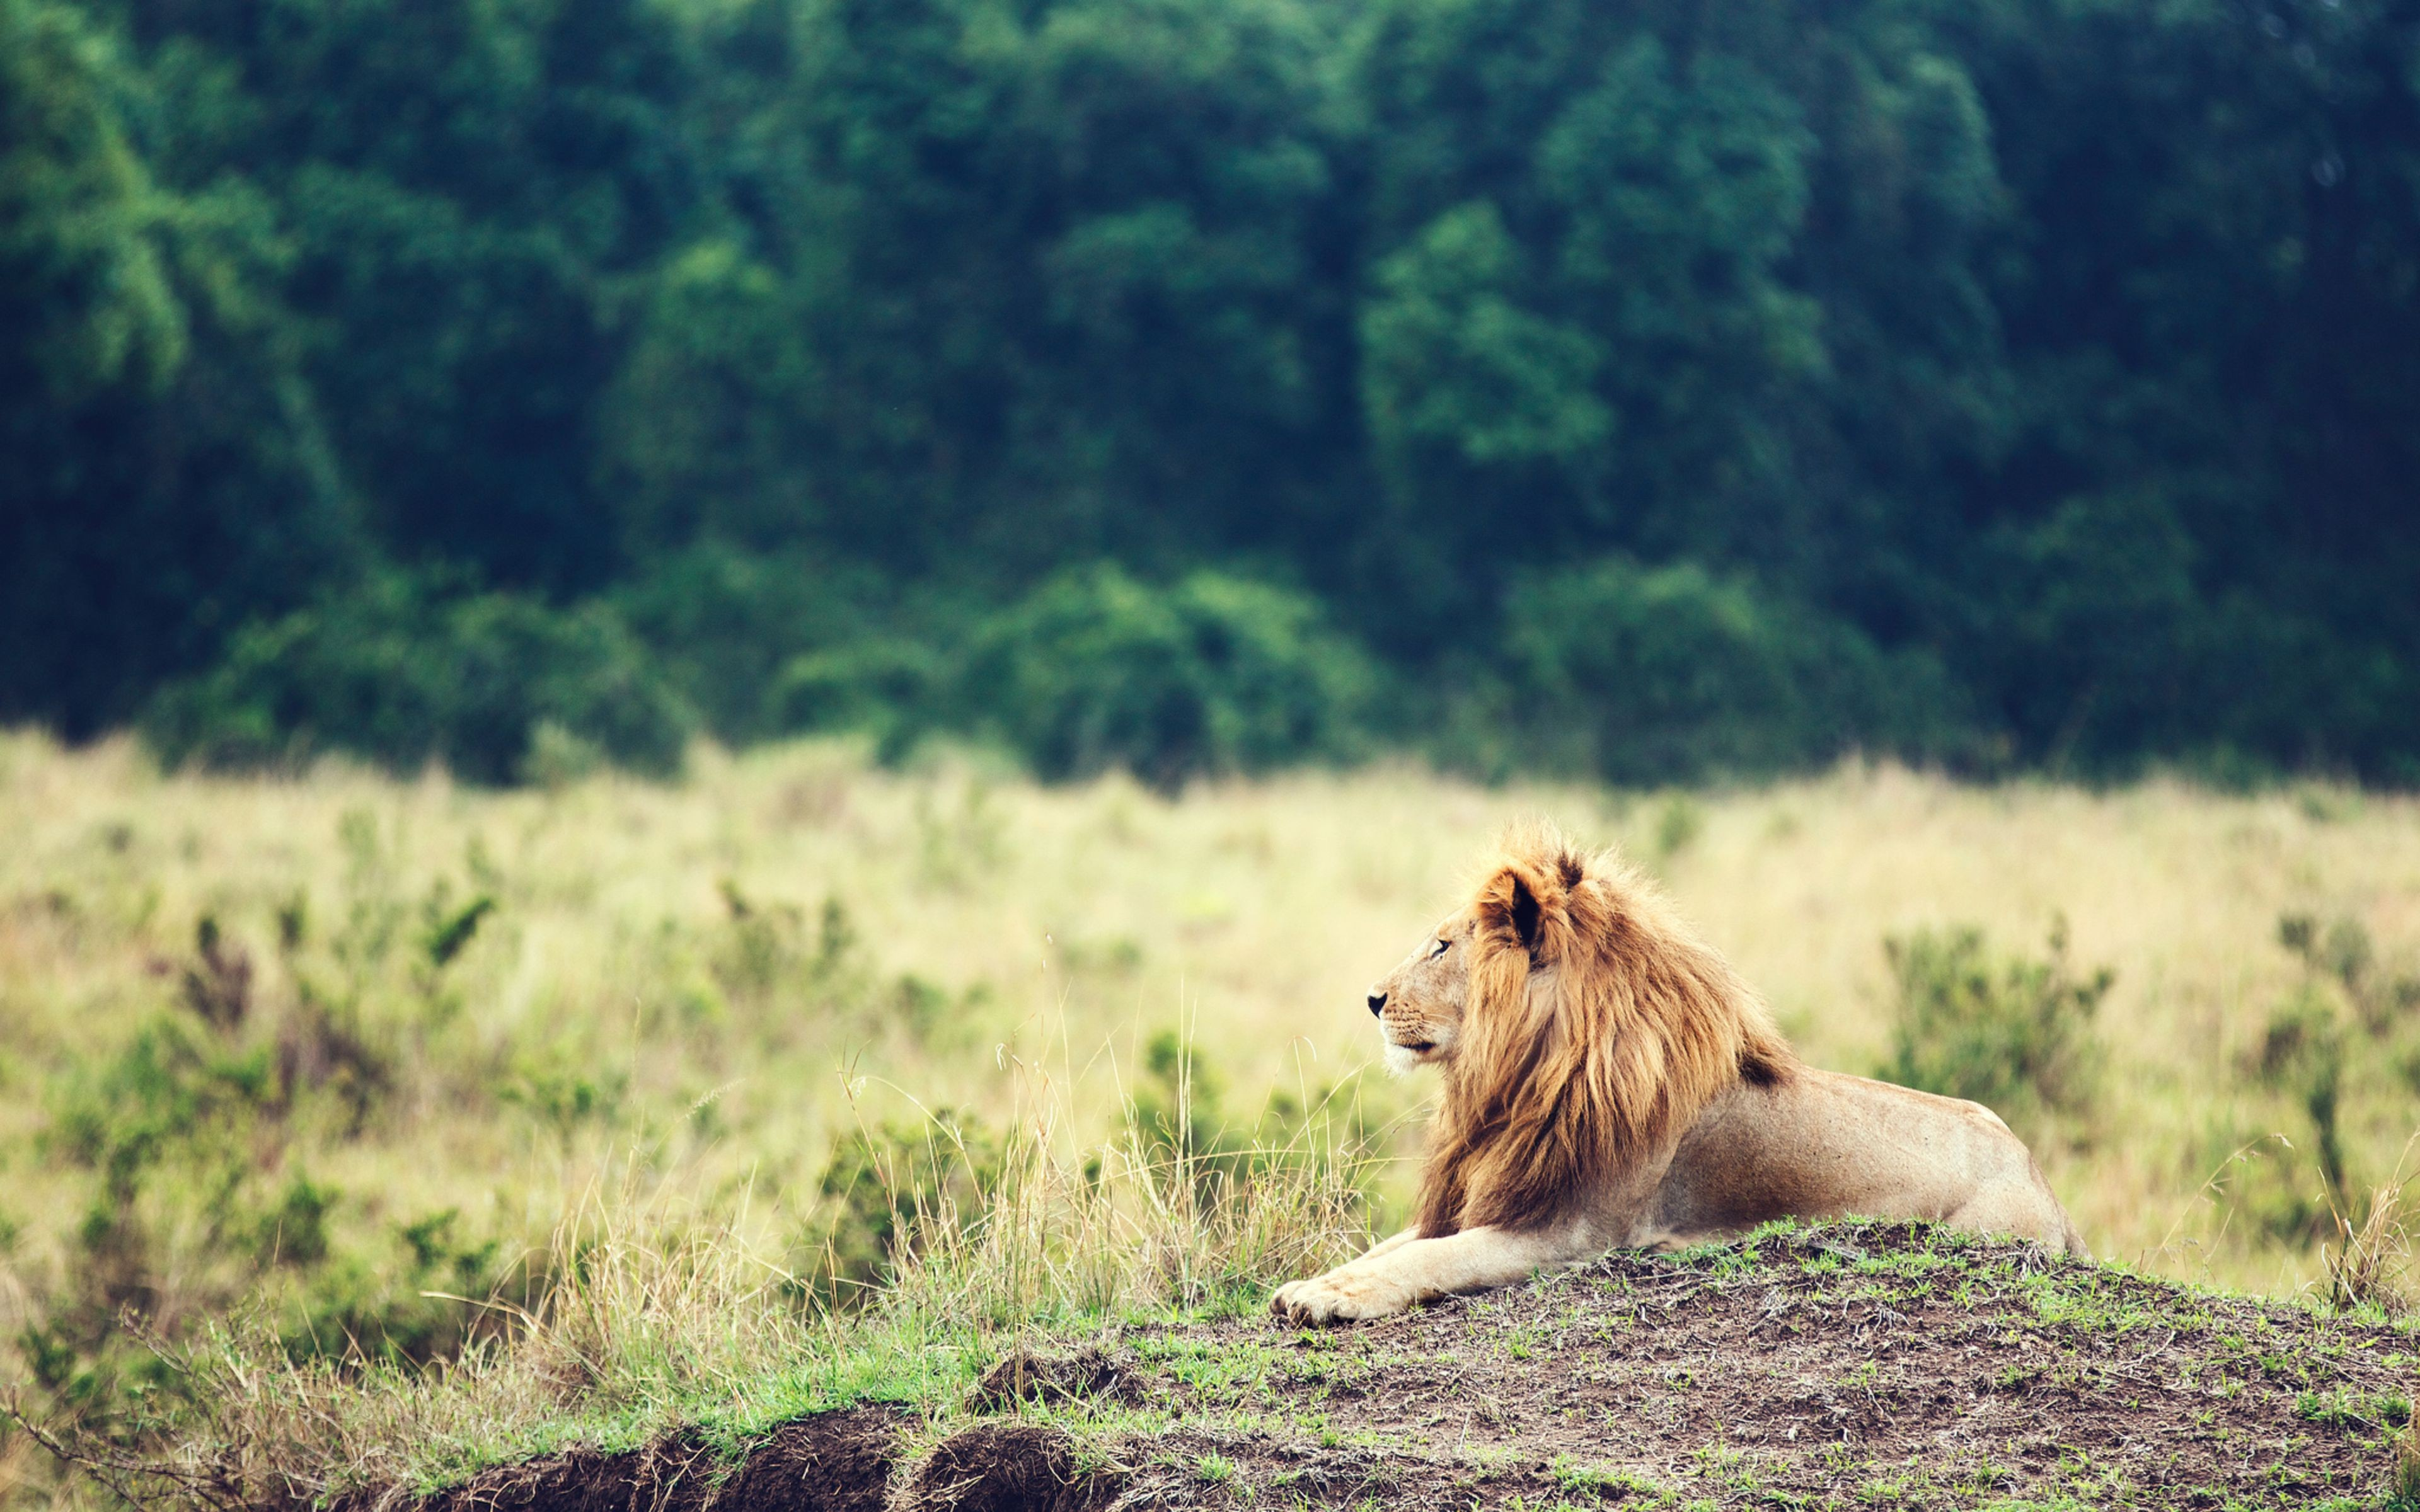 Cute Ipad Wallpaper Pinterest Wallpaper Lion Savanna Trees Animals 5365